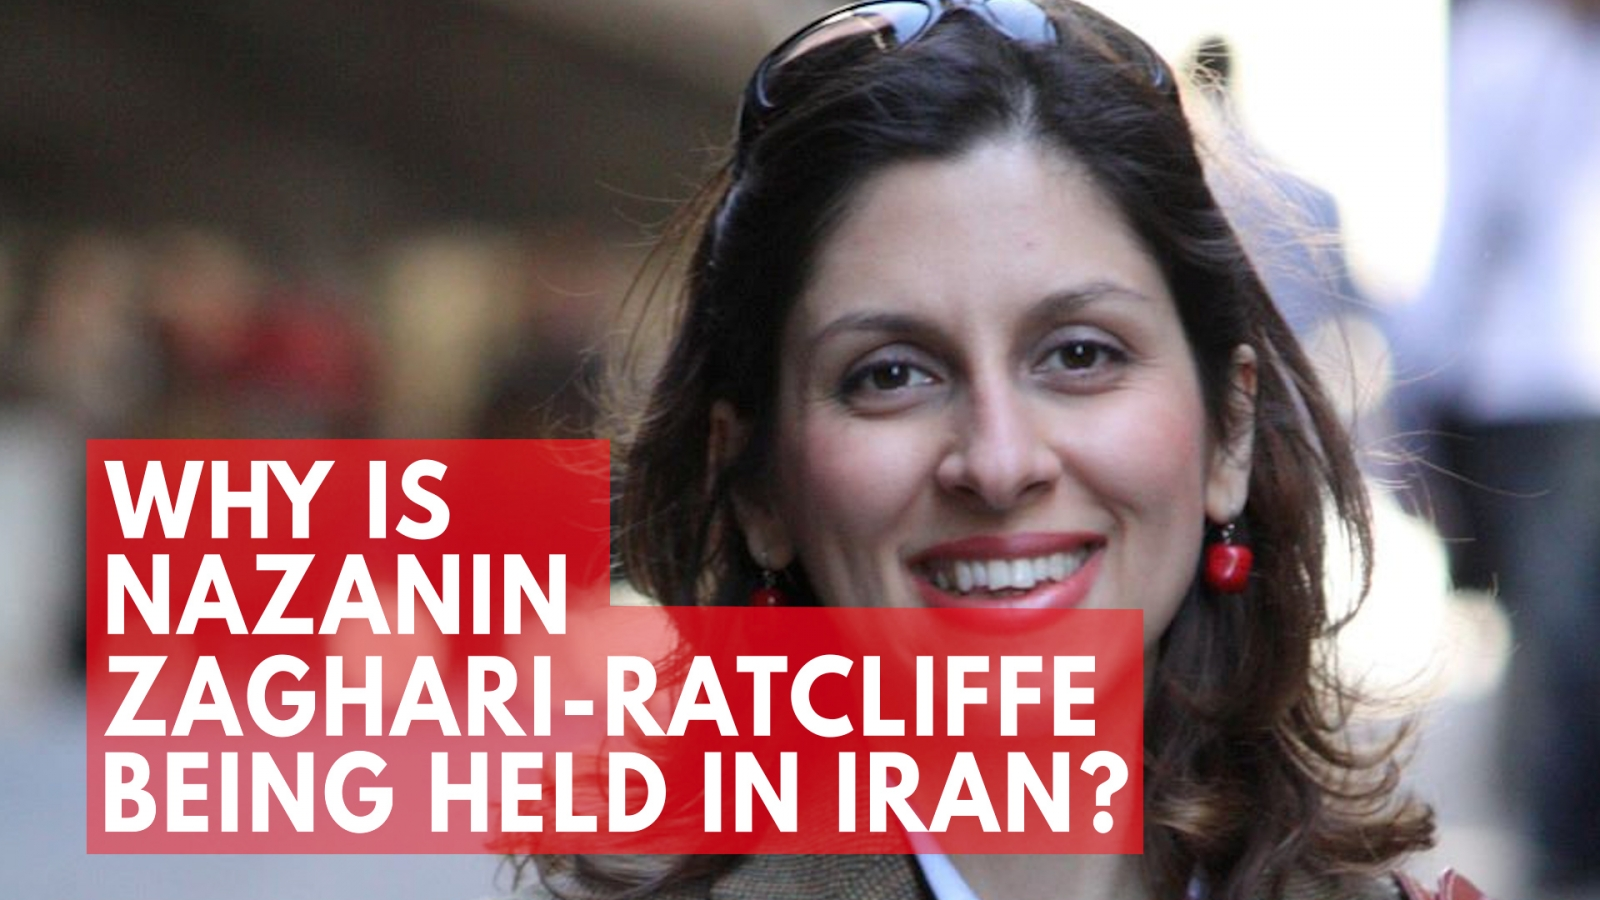 why-is-nazanin-zaghari-ratcliffe-being-held-in-iran